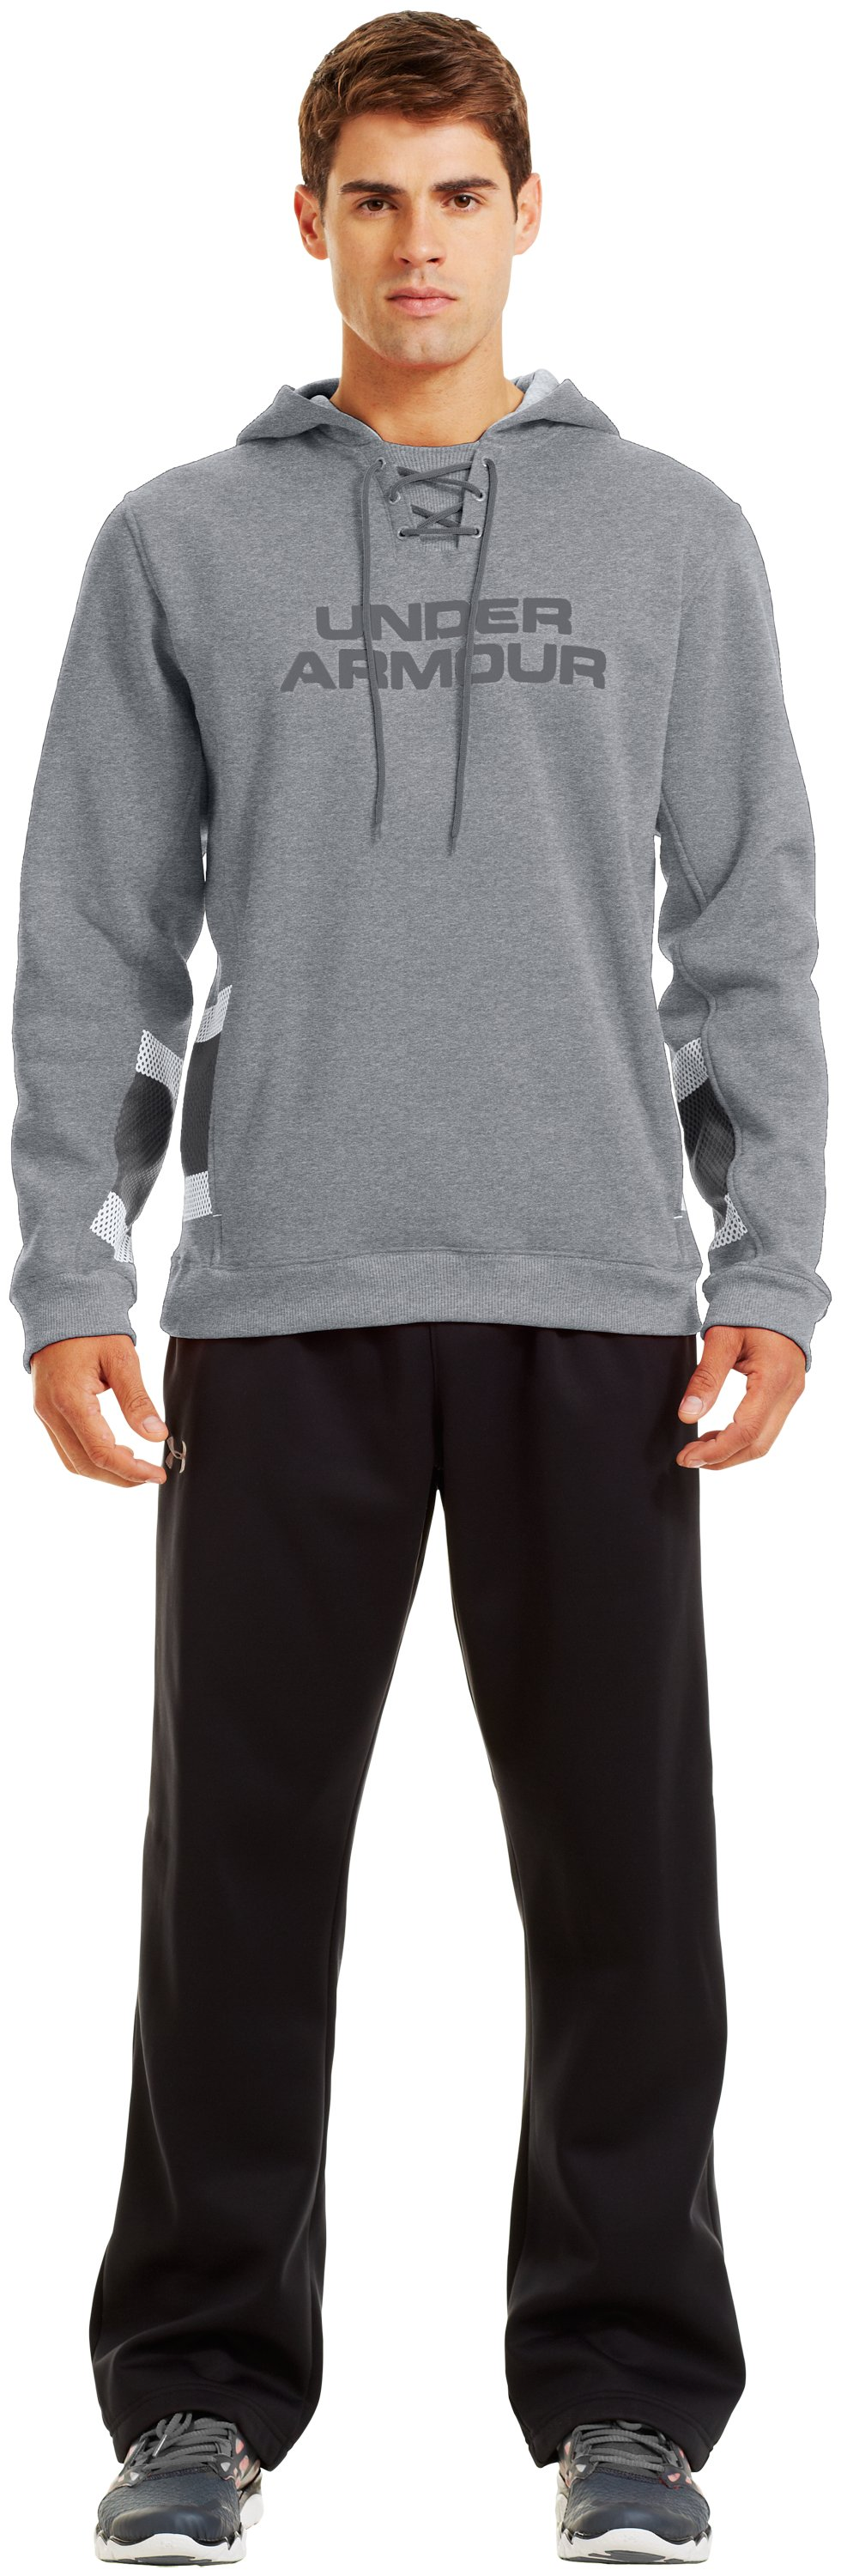 Men's Charged Cotton® Storm Chuck-A-Puck Hoodie, True Gray Heather, zoomed image